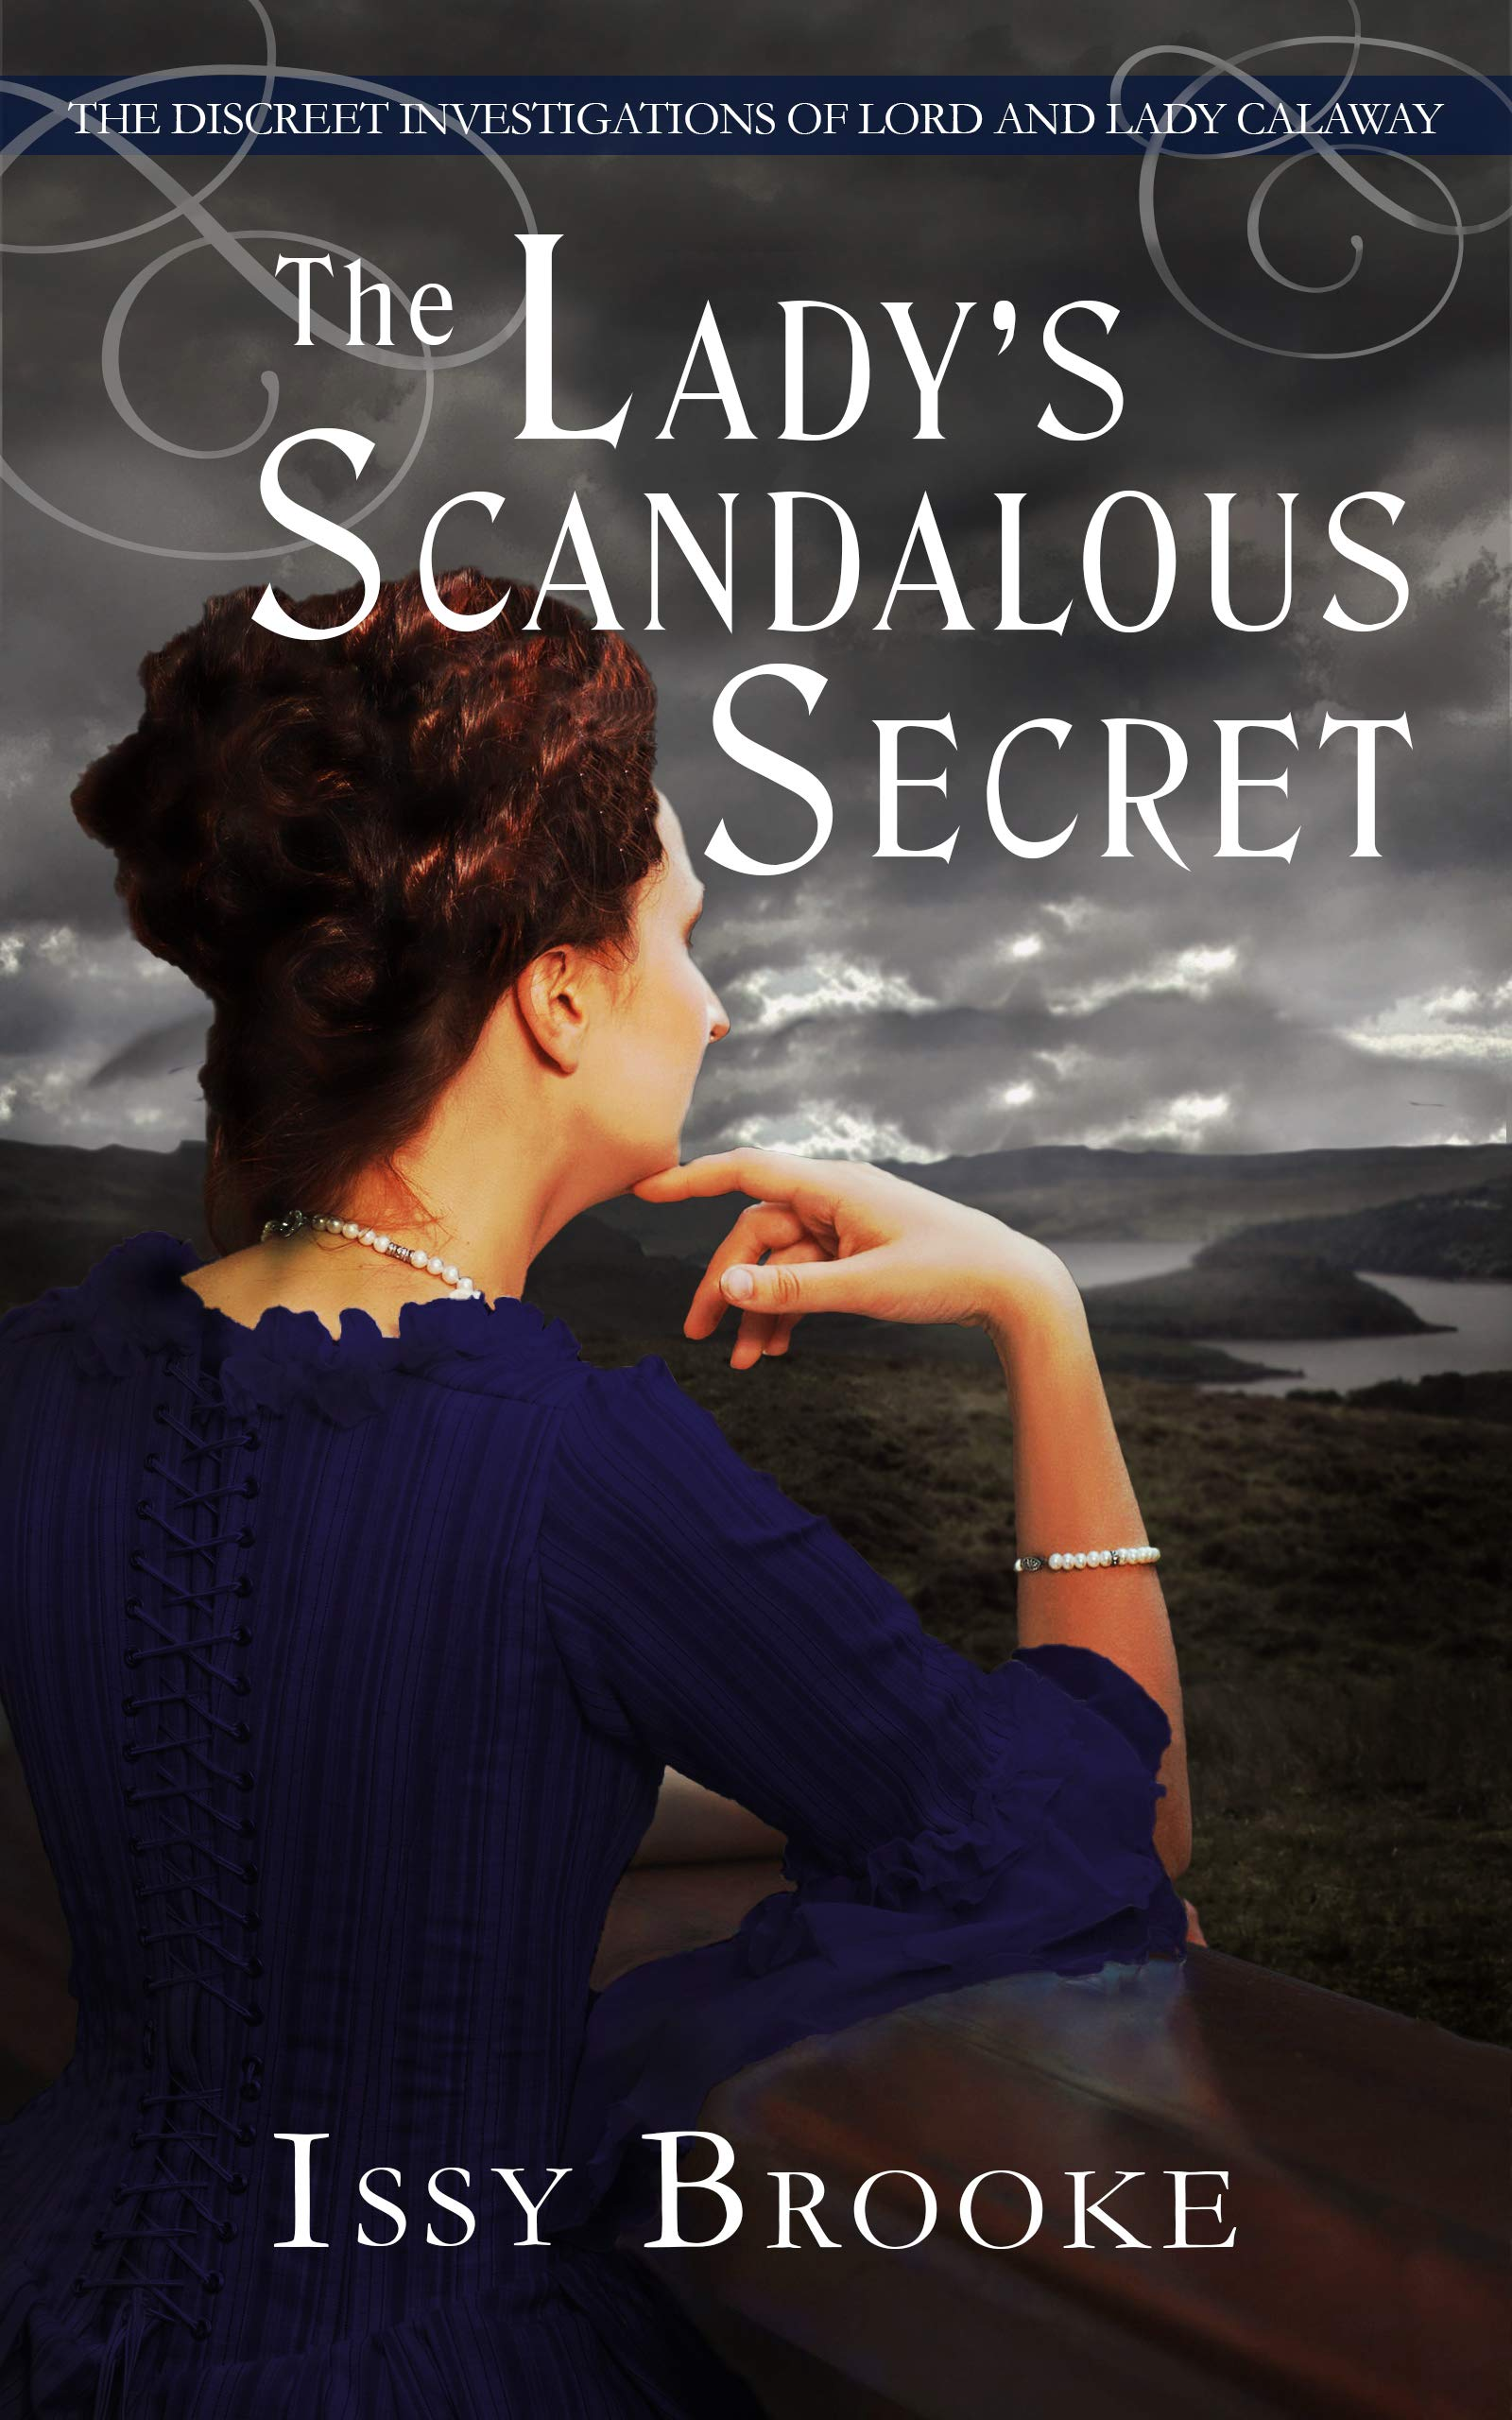 The Lady's Scandalous Secret (The Discreet Investigations of Lord and Lady Calaway #7)